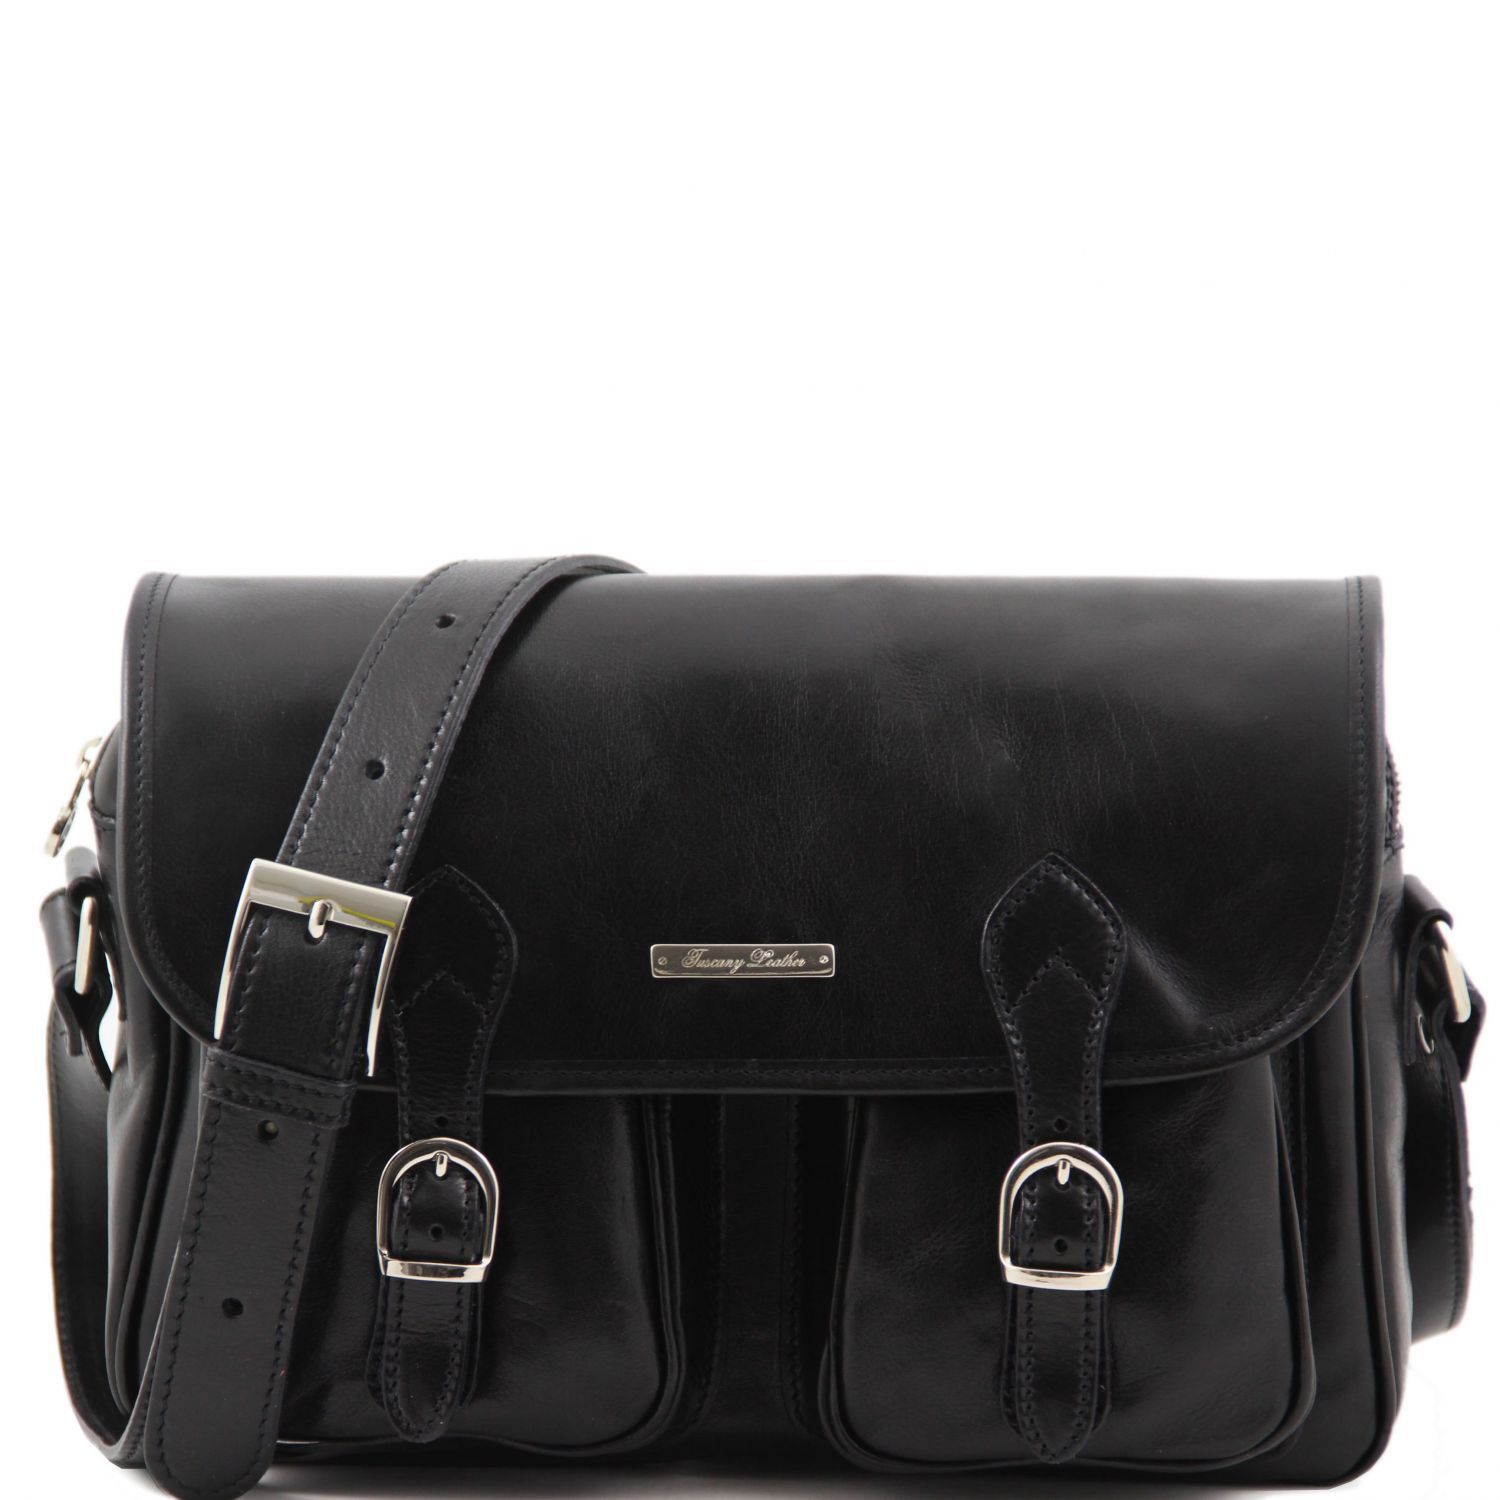 San Marino Travel Leather Bag With Pockets On The Front